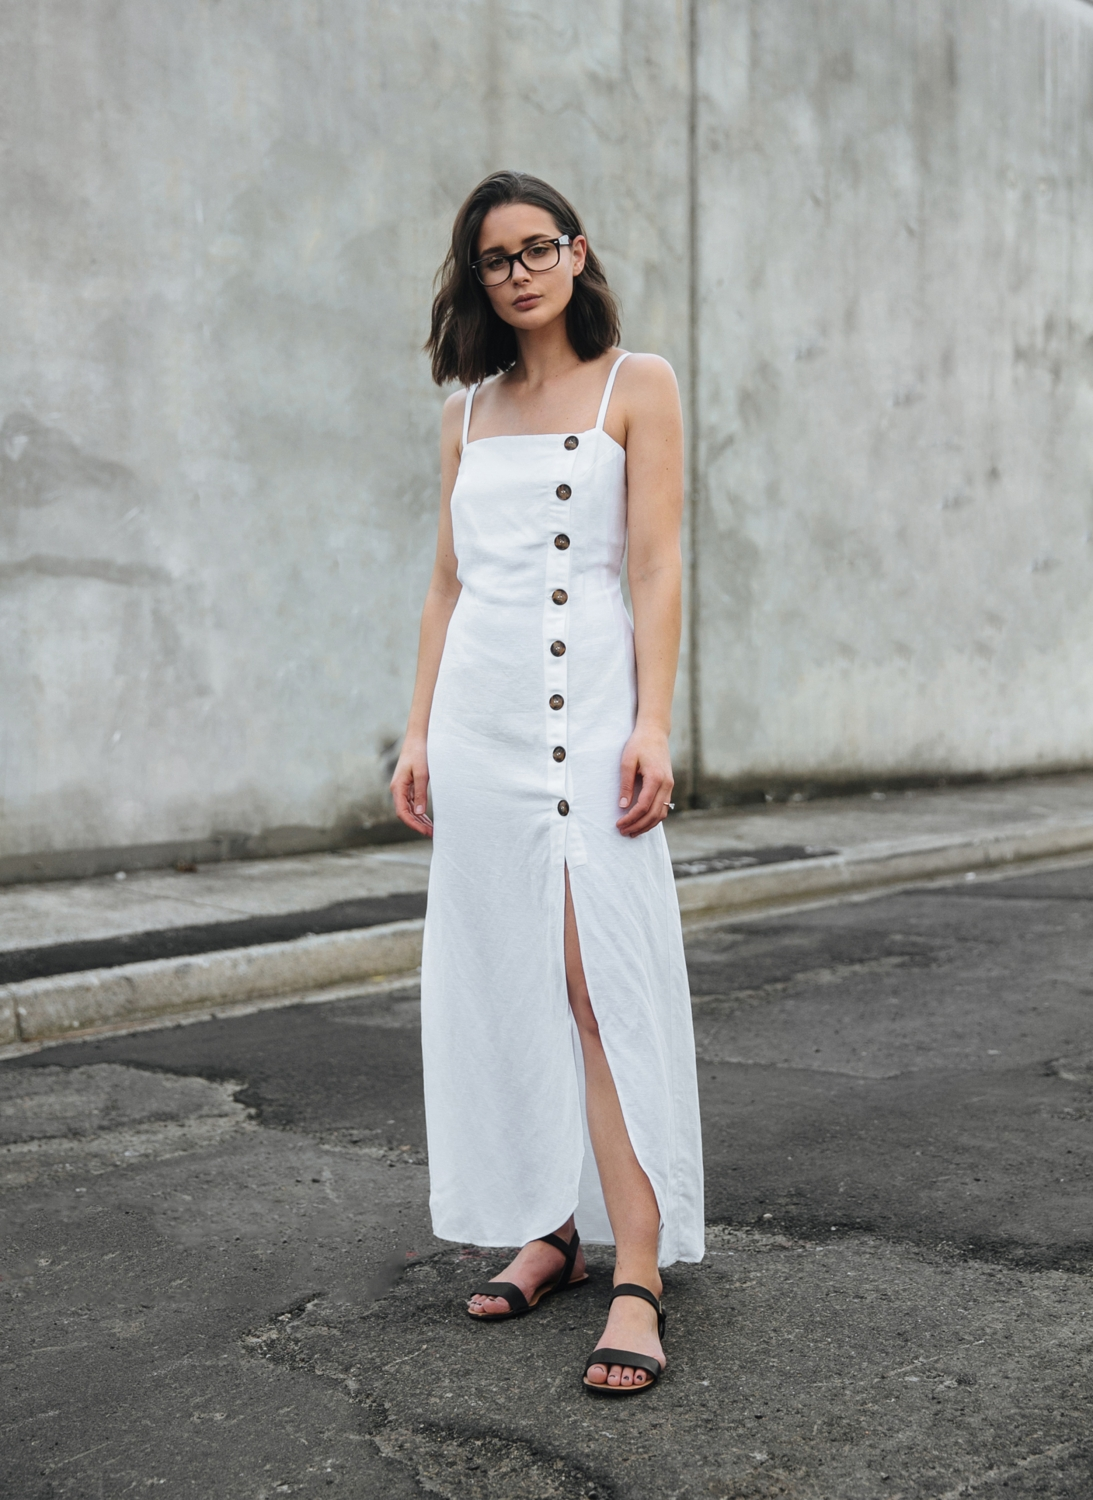 OPSM Ray Ban glasses | white Reformation dress |style | outfit | HarperandHarley